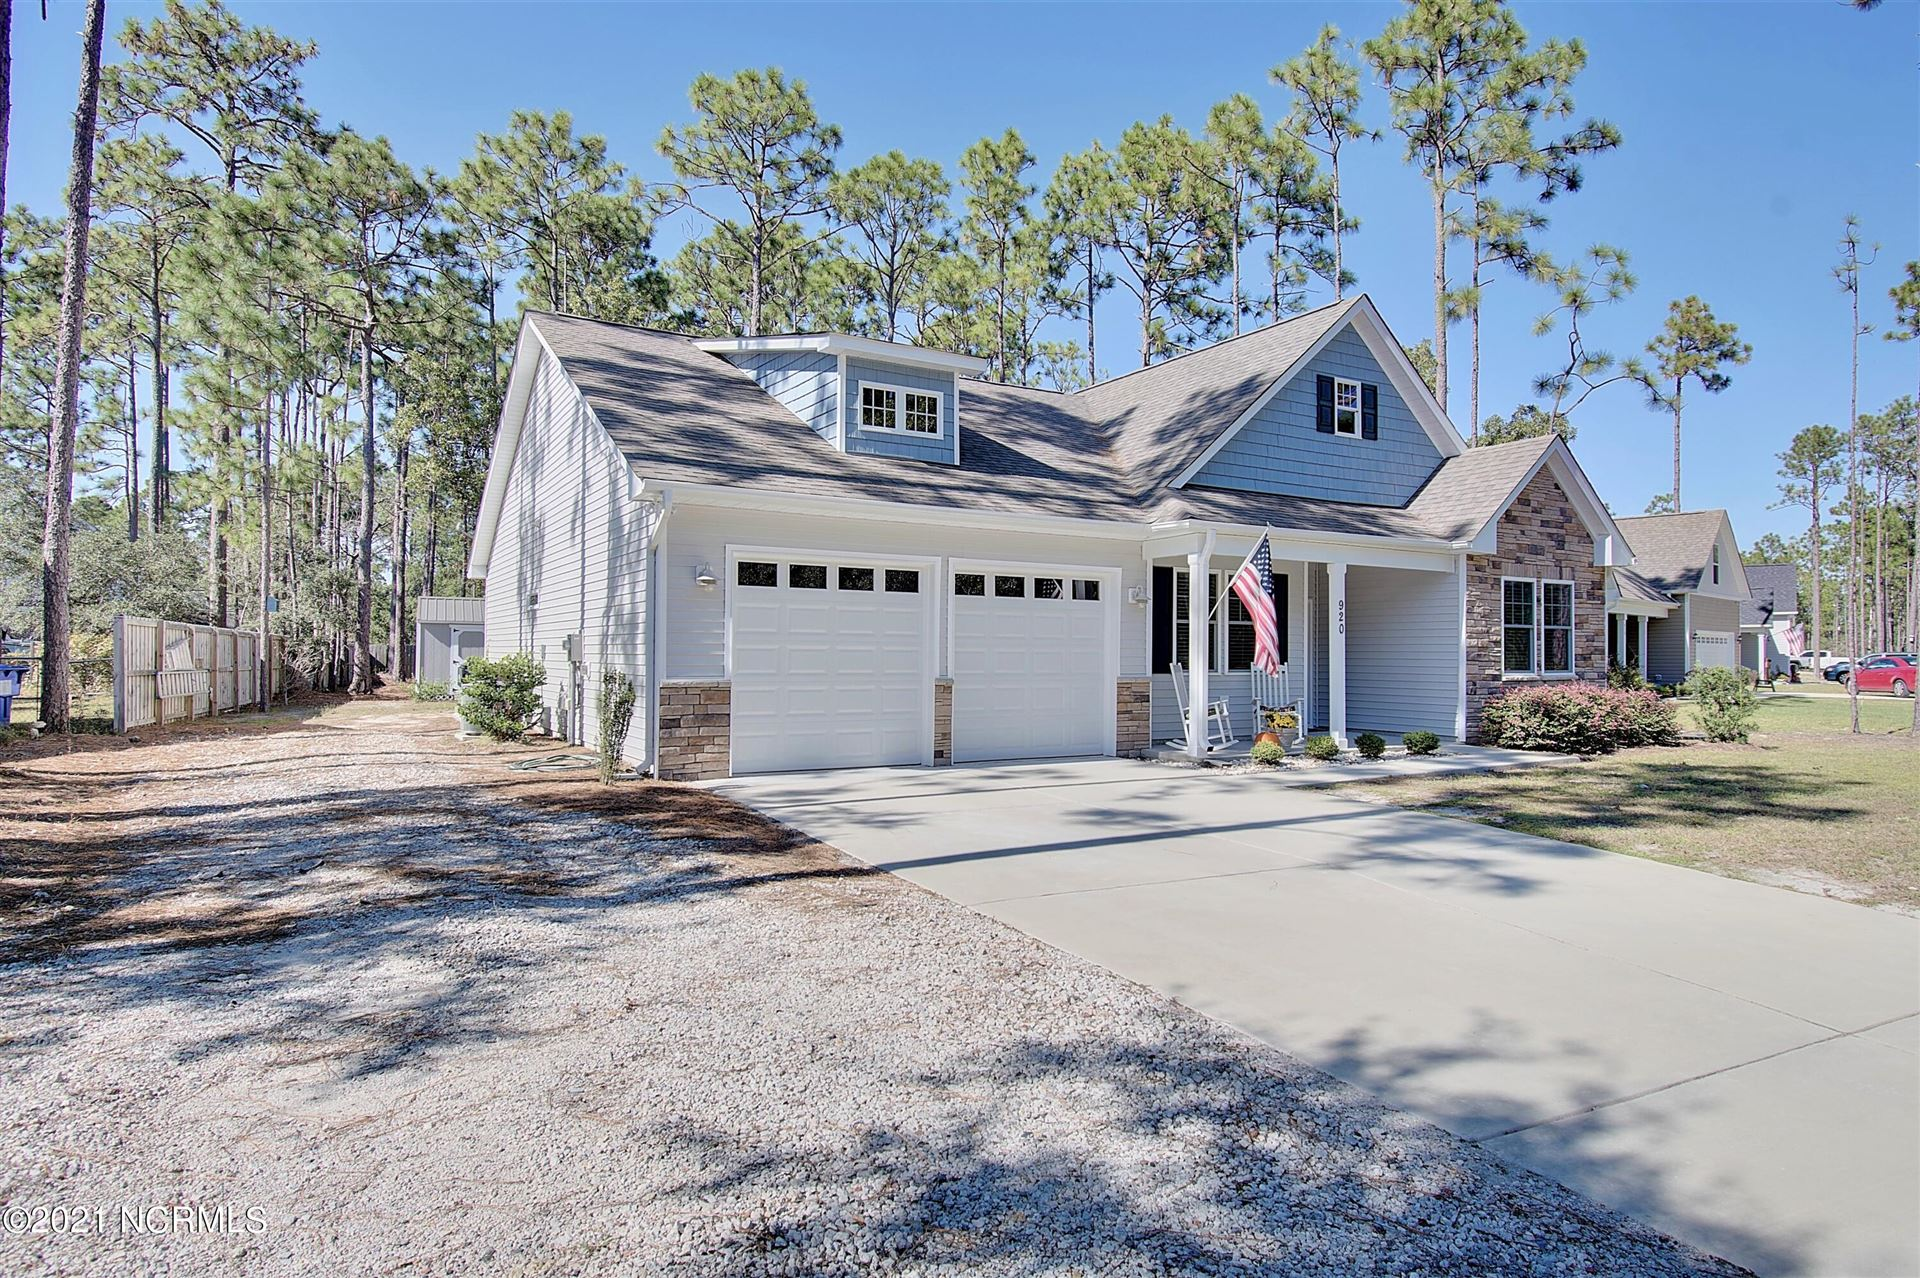 Photo of 920 Eden Drive, Southport, NC 28461 (MLS # 100295901)